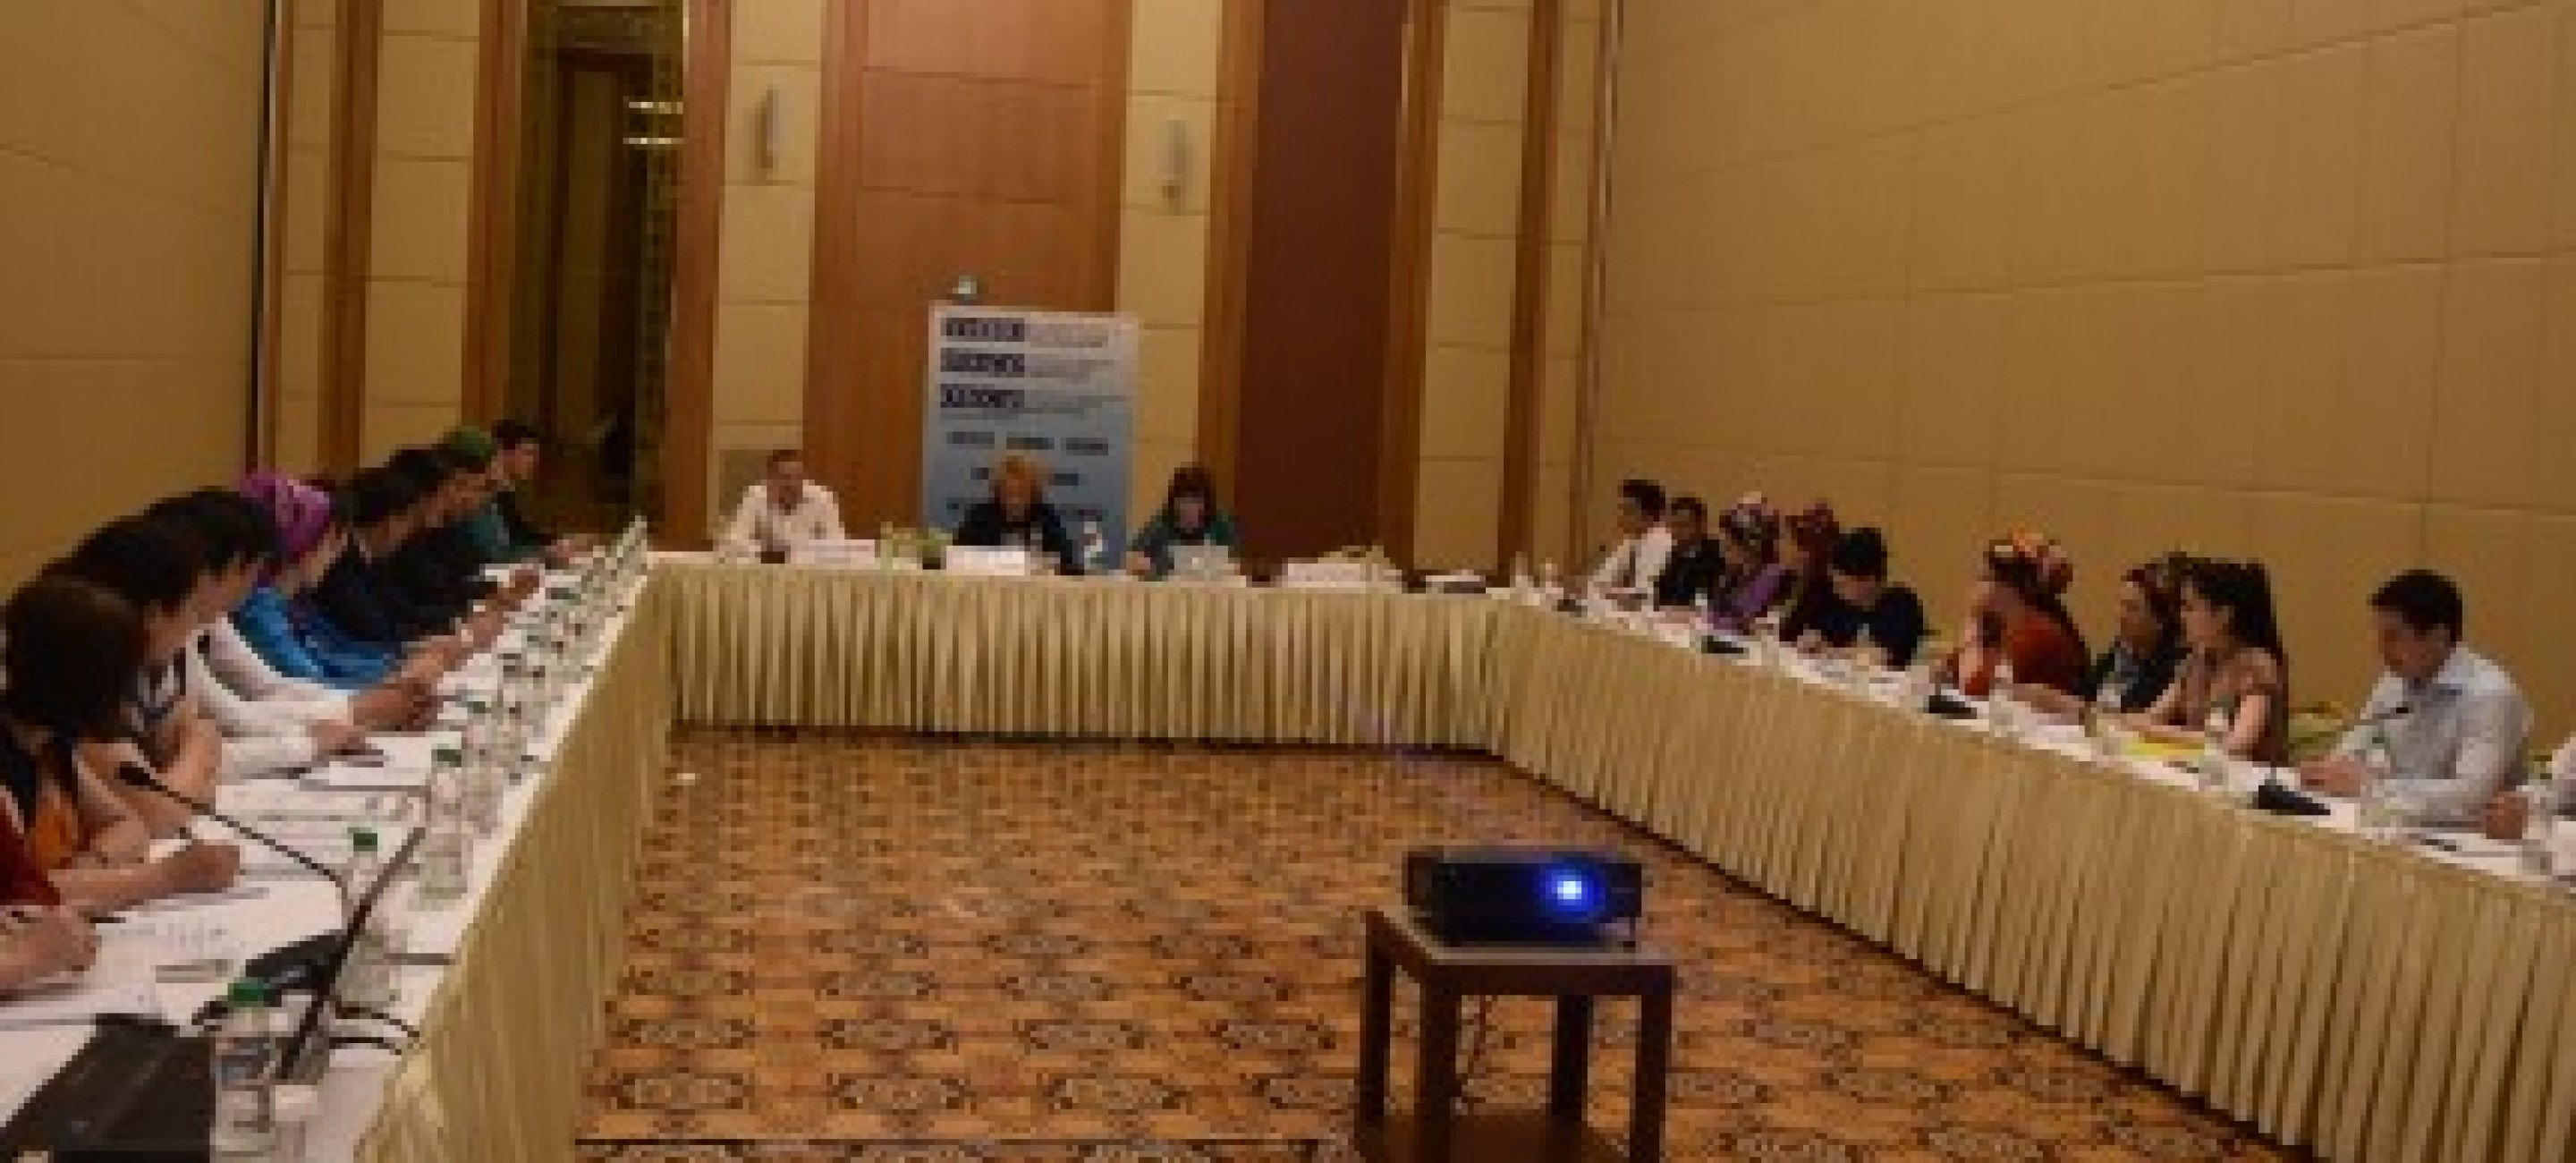 INTERNATIONAL STANDARDS OF BROADCASTING FOCUS OF OSCE SEMINAR IN TURKMENISTAN